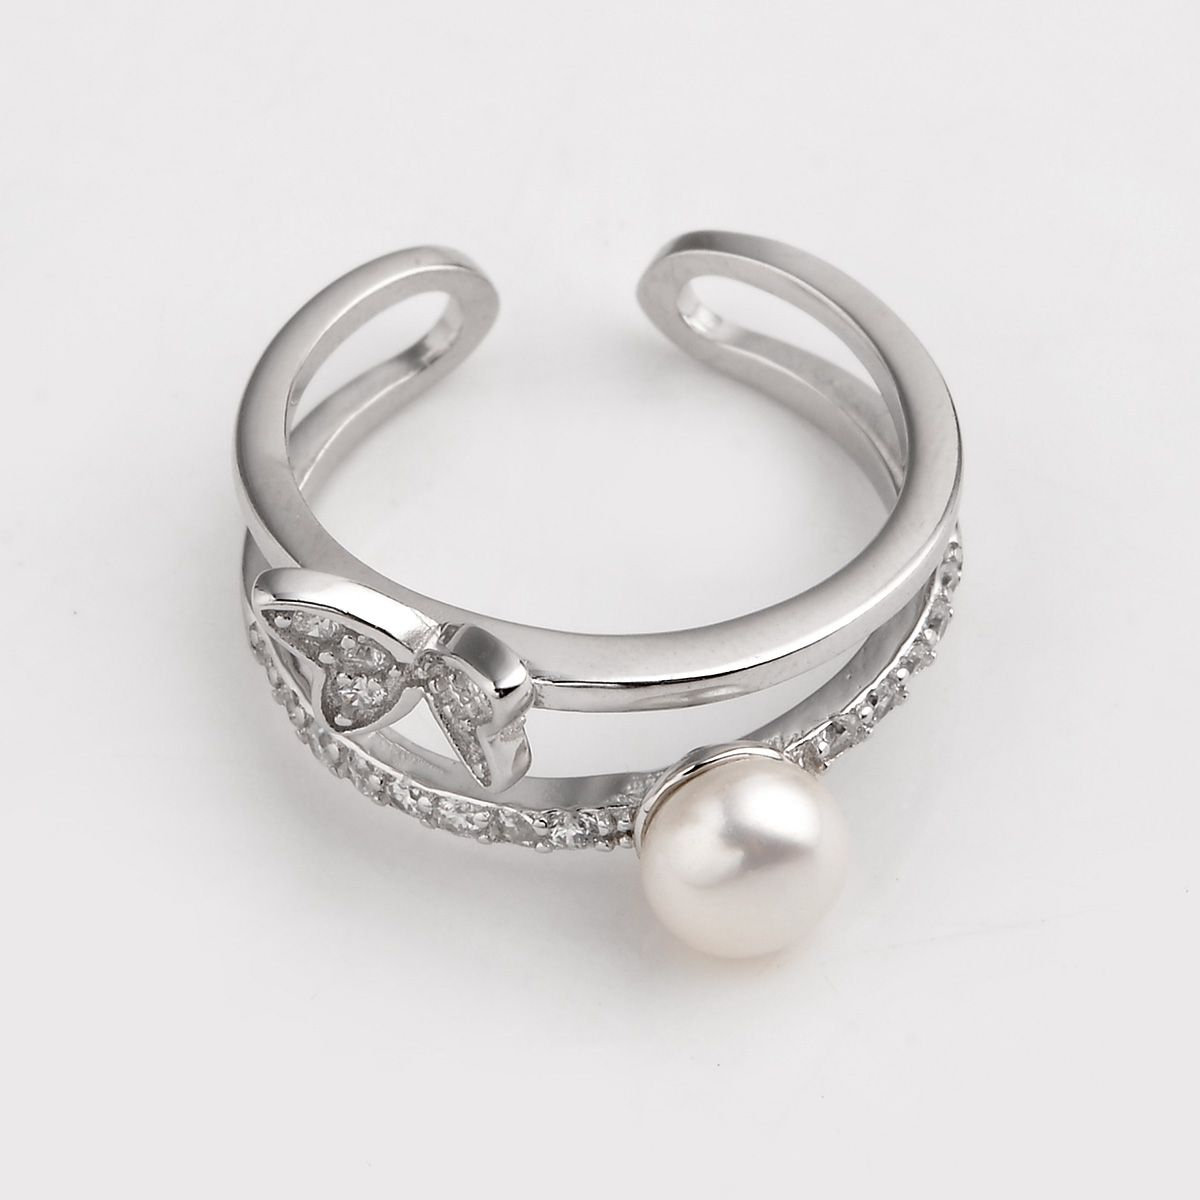 Bread Freshwater Cultured Pearl Little Butterfly 925 Silver Zircon Studded  Opening Style Ring With Regard To Newest Bead & Freshwater Cultured Pearl Open Rings (View 7 of 25)